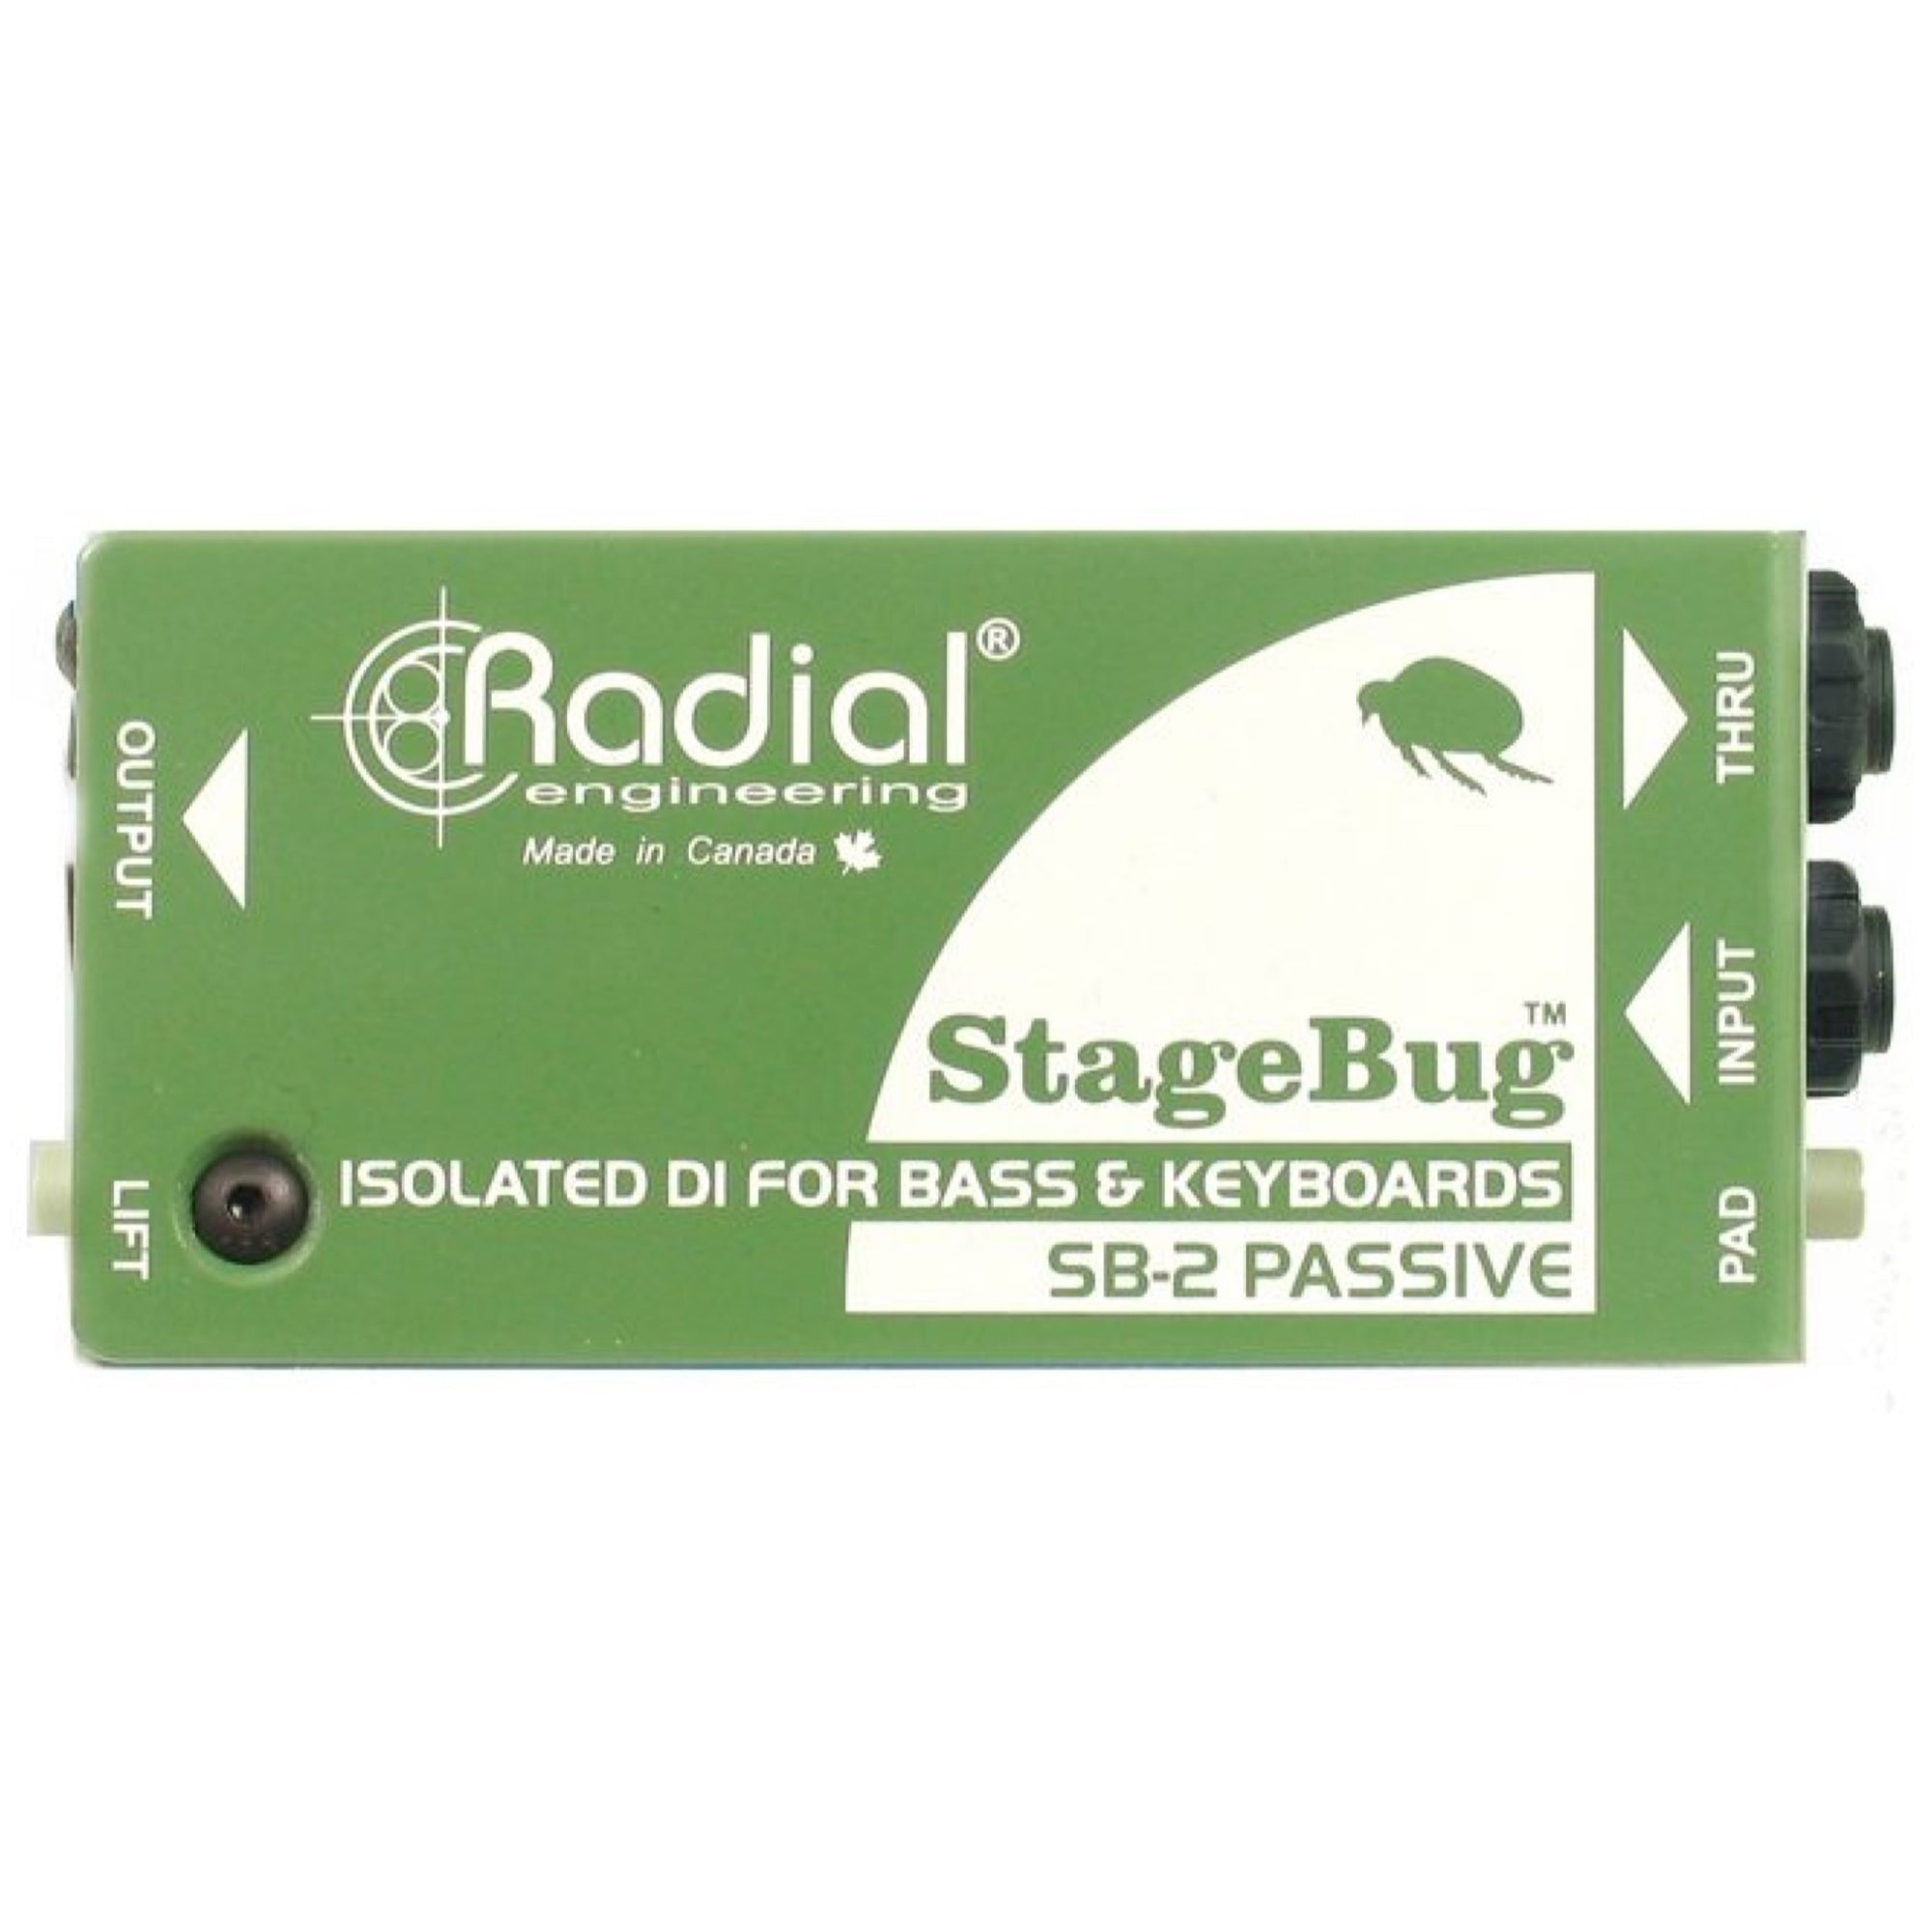 Radial StageBug SB-2 Passive Compact DI Direct Box